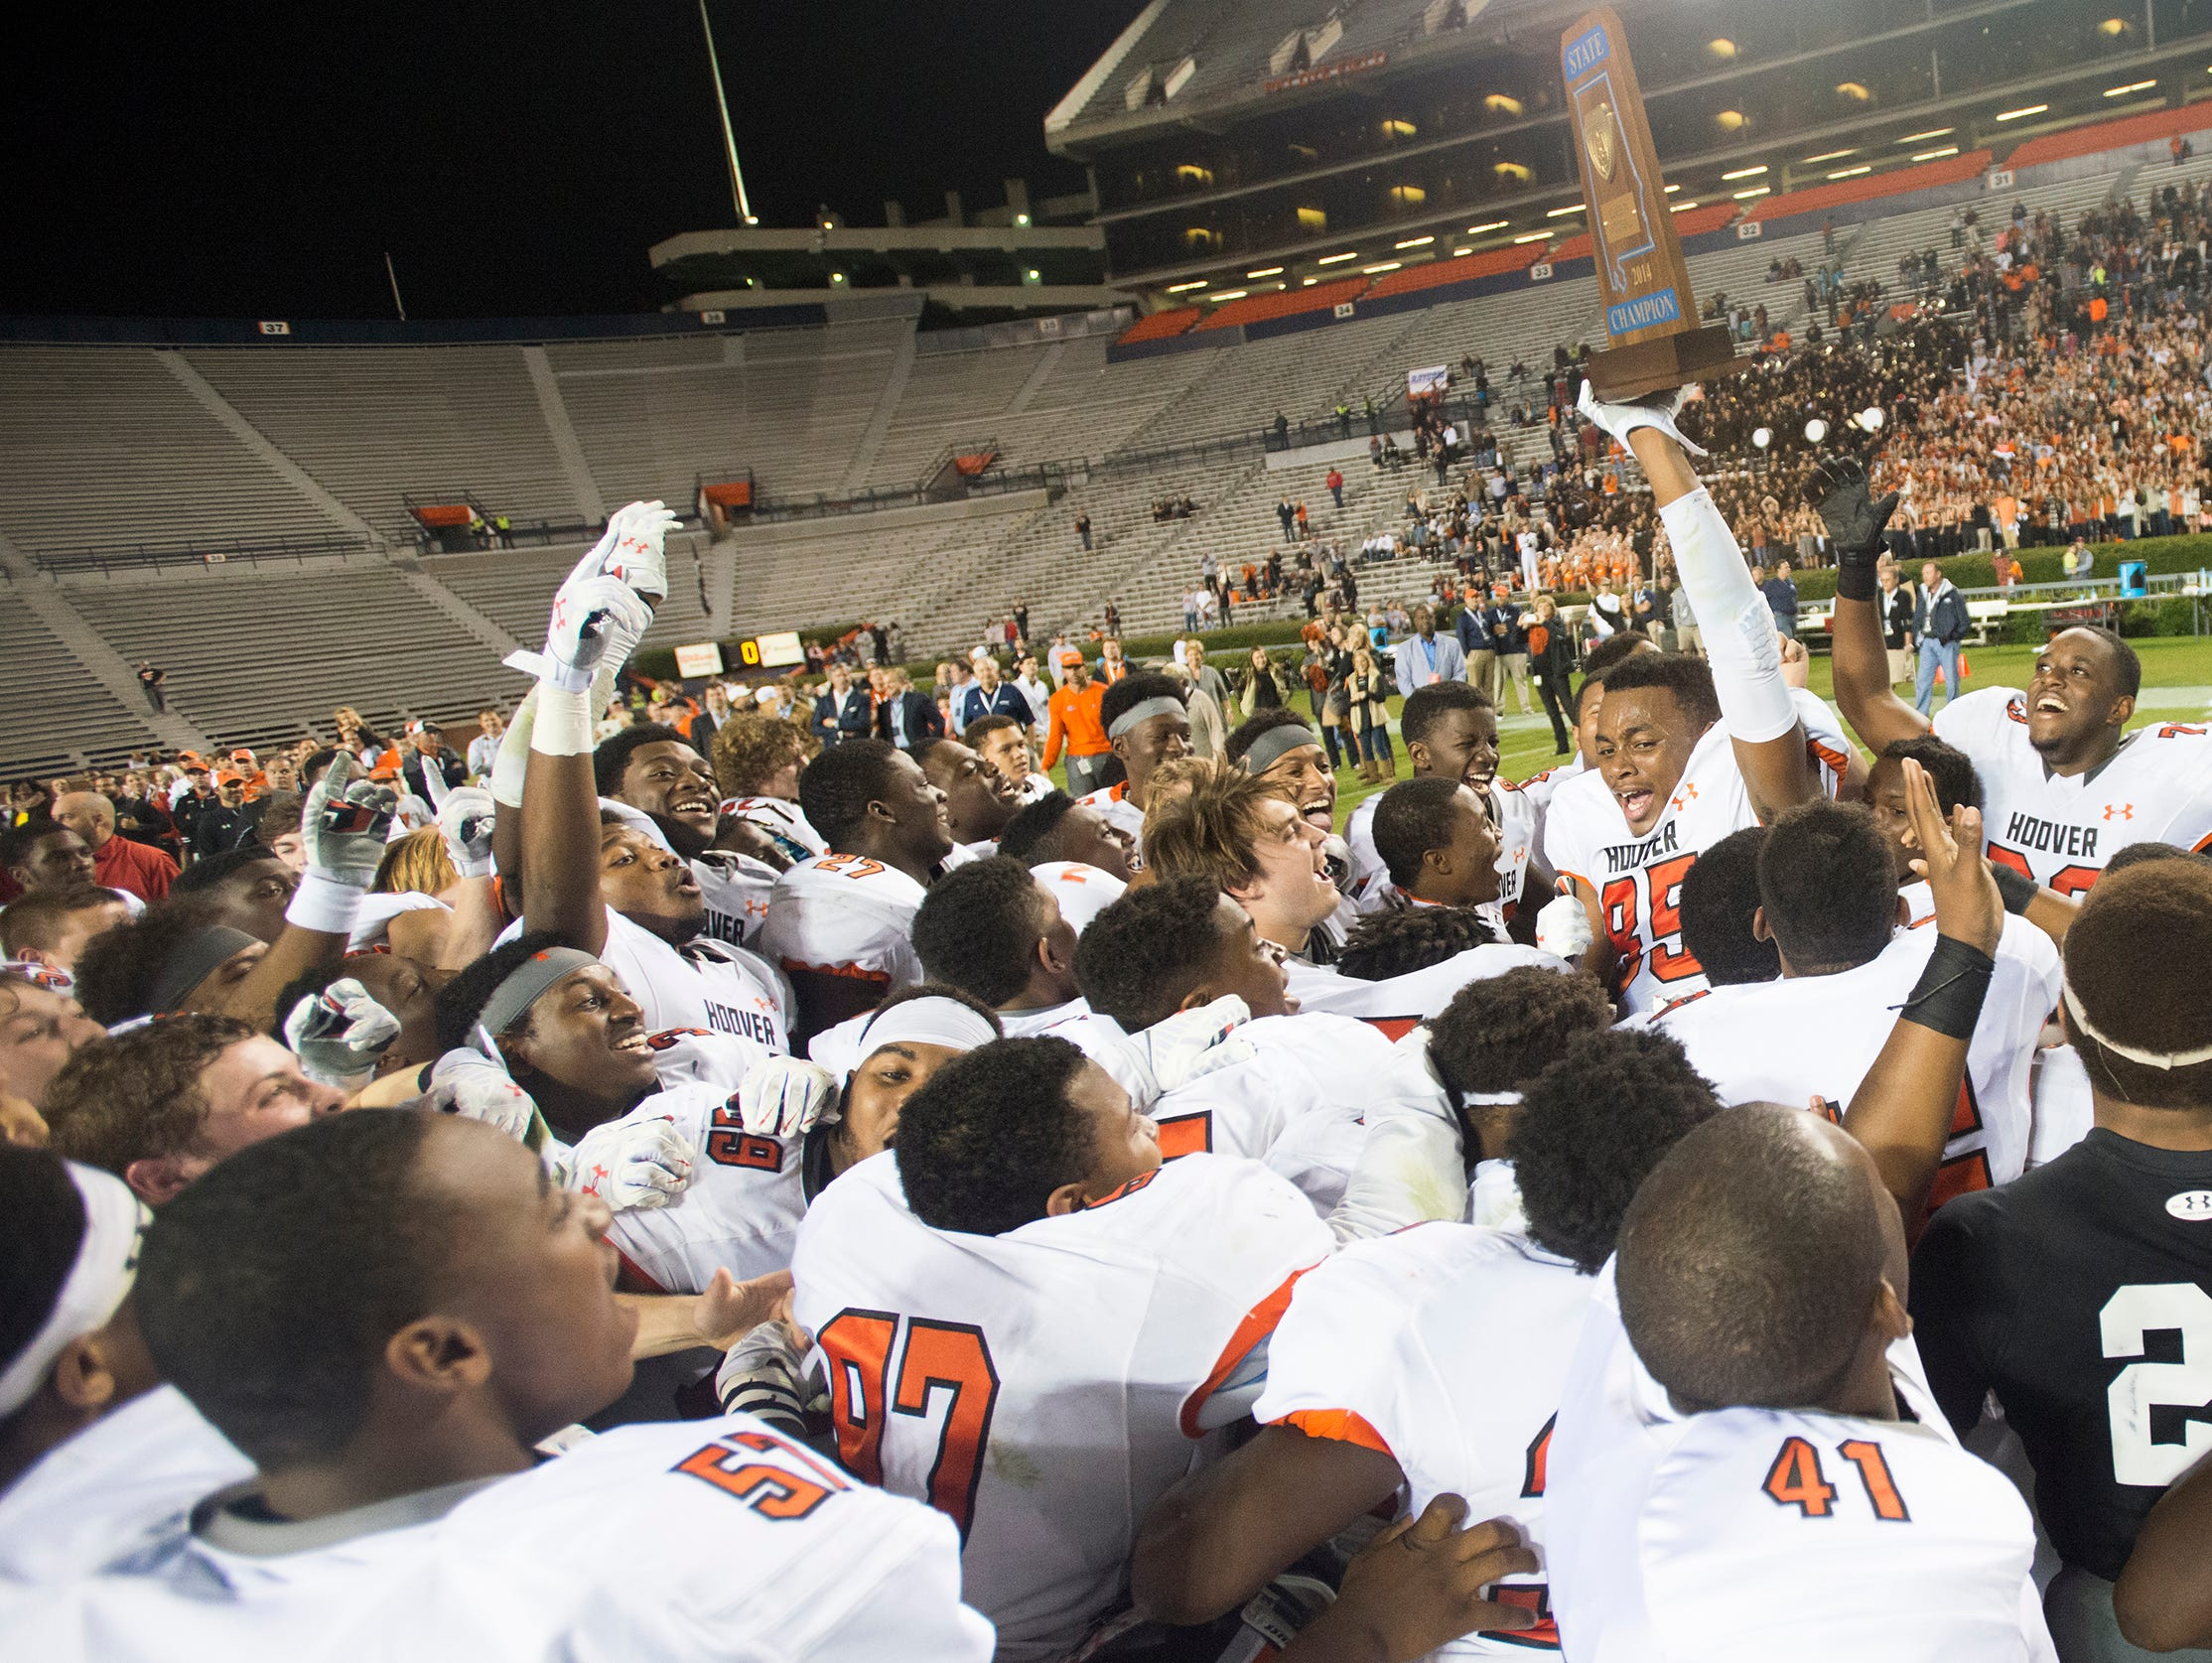 Hoover wide receiver Quincy Cox (85) celebrates the Class 7A State Championship game at Jordan-Hare Stadium on Wednesday, Dec. 3, 2014, in Auburn, Ala. Hoover defeated Prattville 35-21.